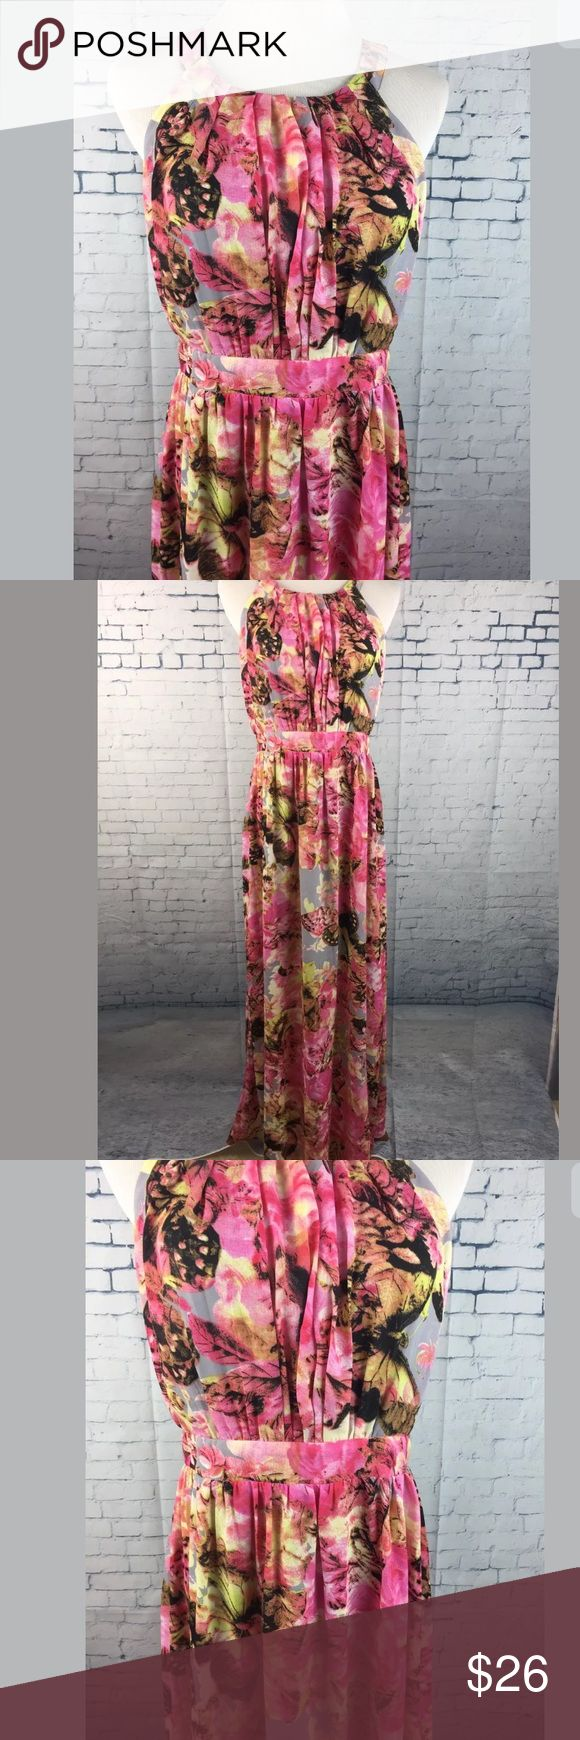 Filly Flair Maxi Dress Large Floral Butterflies New Filly Flair Maxi Dress Size Large Floral Butterflies NWT  Lined  Zipper in back  Smoke free home. Filly Flair Dresses Maxi